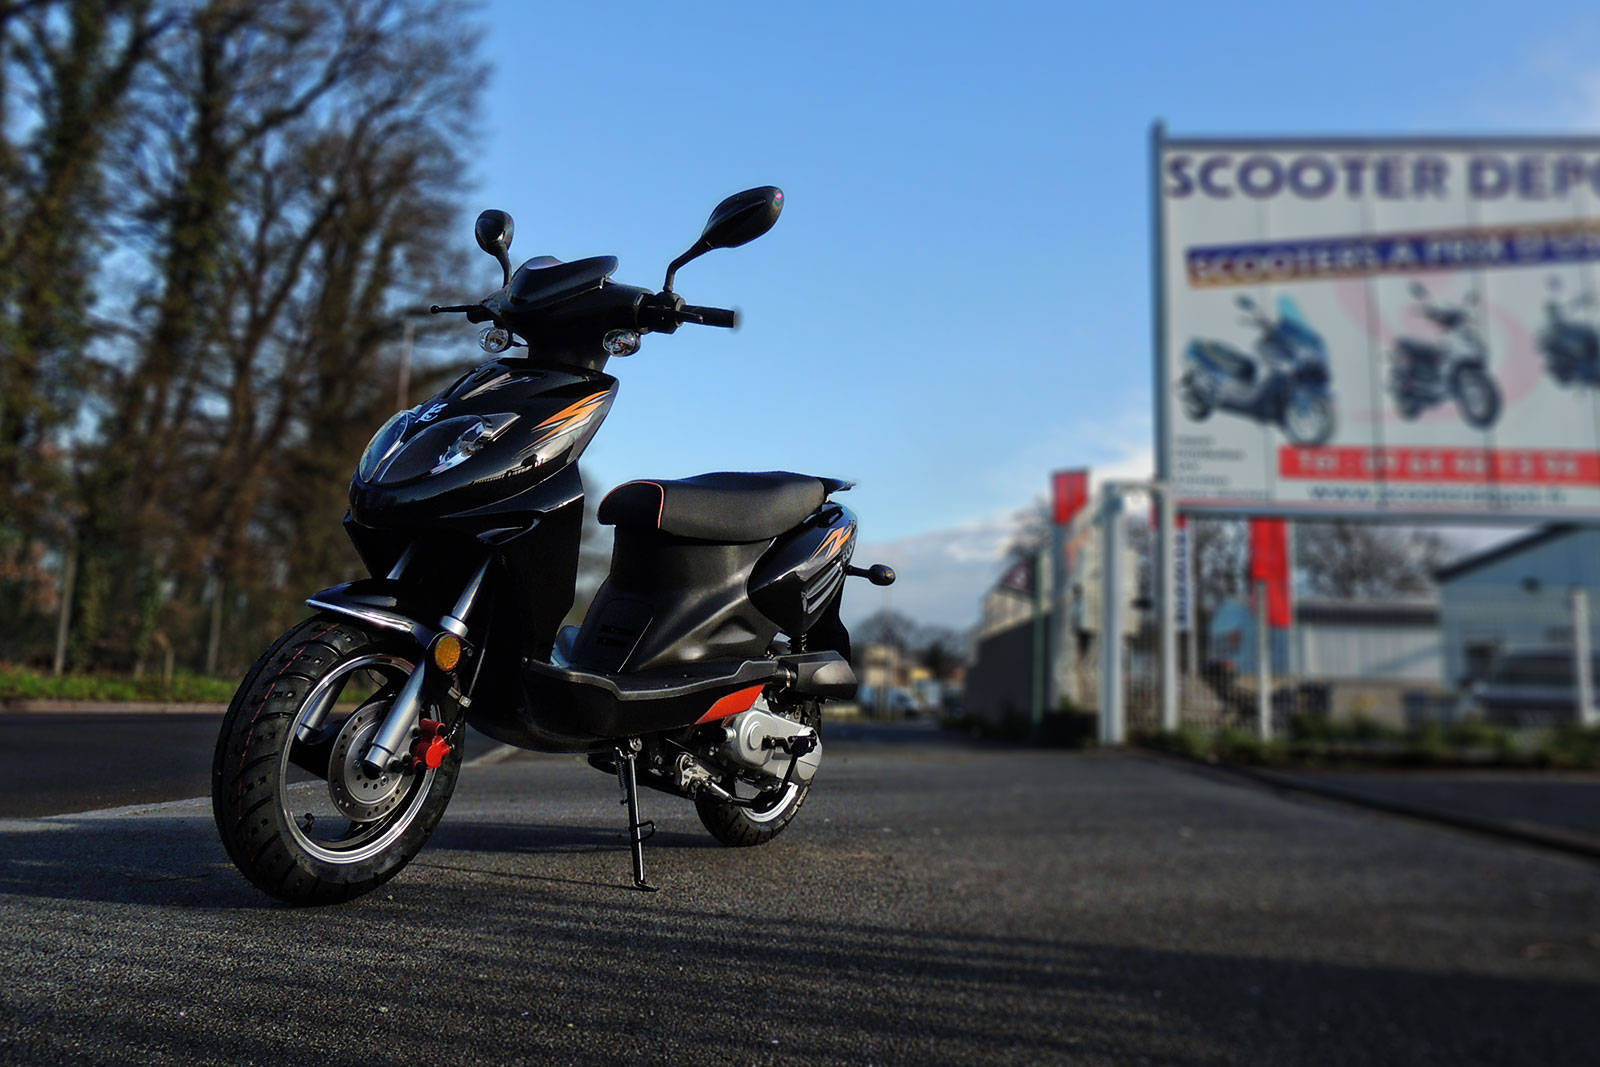 SCOOTER-50-ECCHO-NEW-STAR-SPORT-01